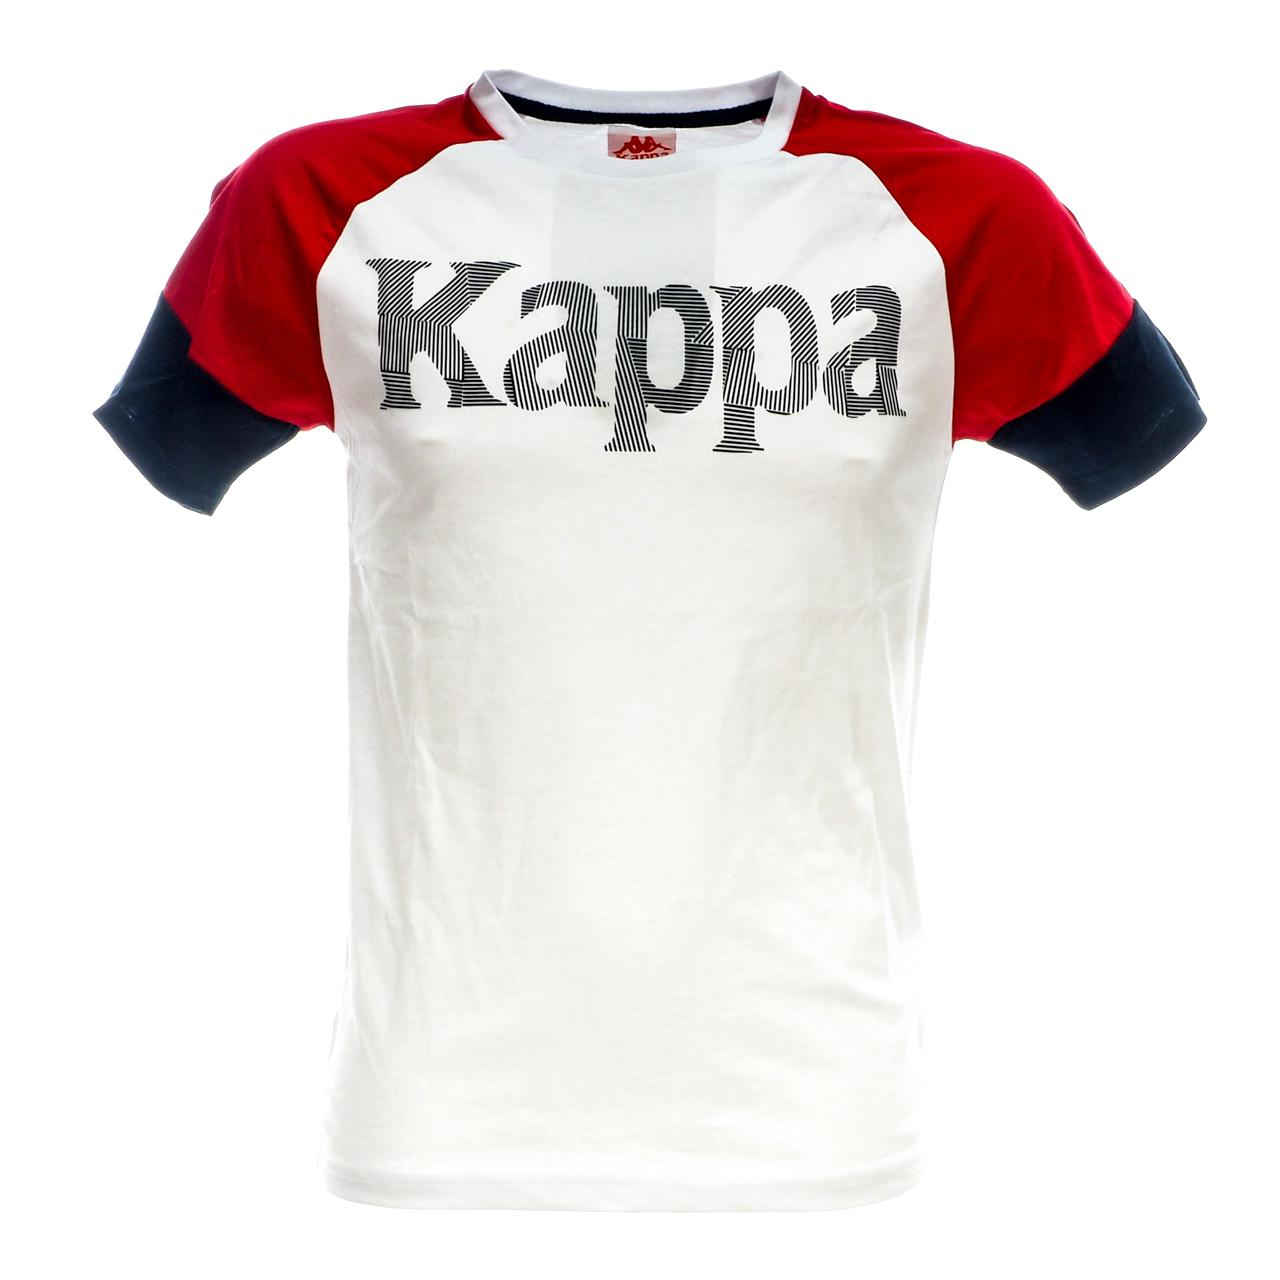 Short-Sleeve-T-Shirt-Kappa-Irmiou-Red-White-Navy-White-46521-New